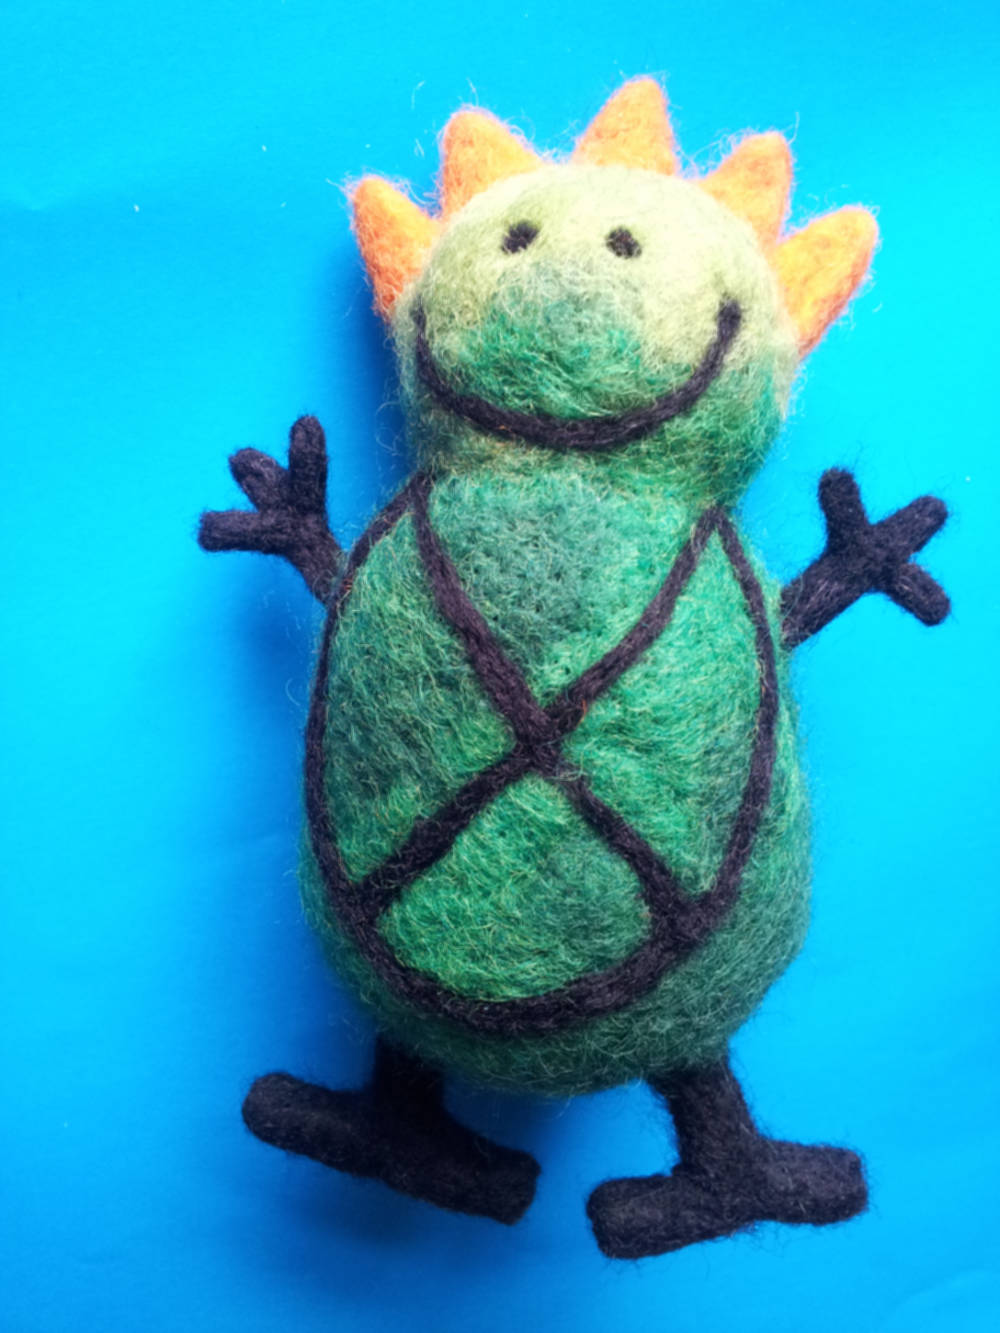 Needle felt kid's drawing made 3D